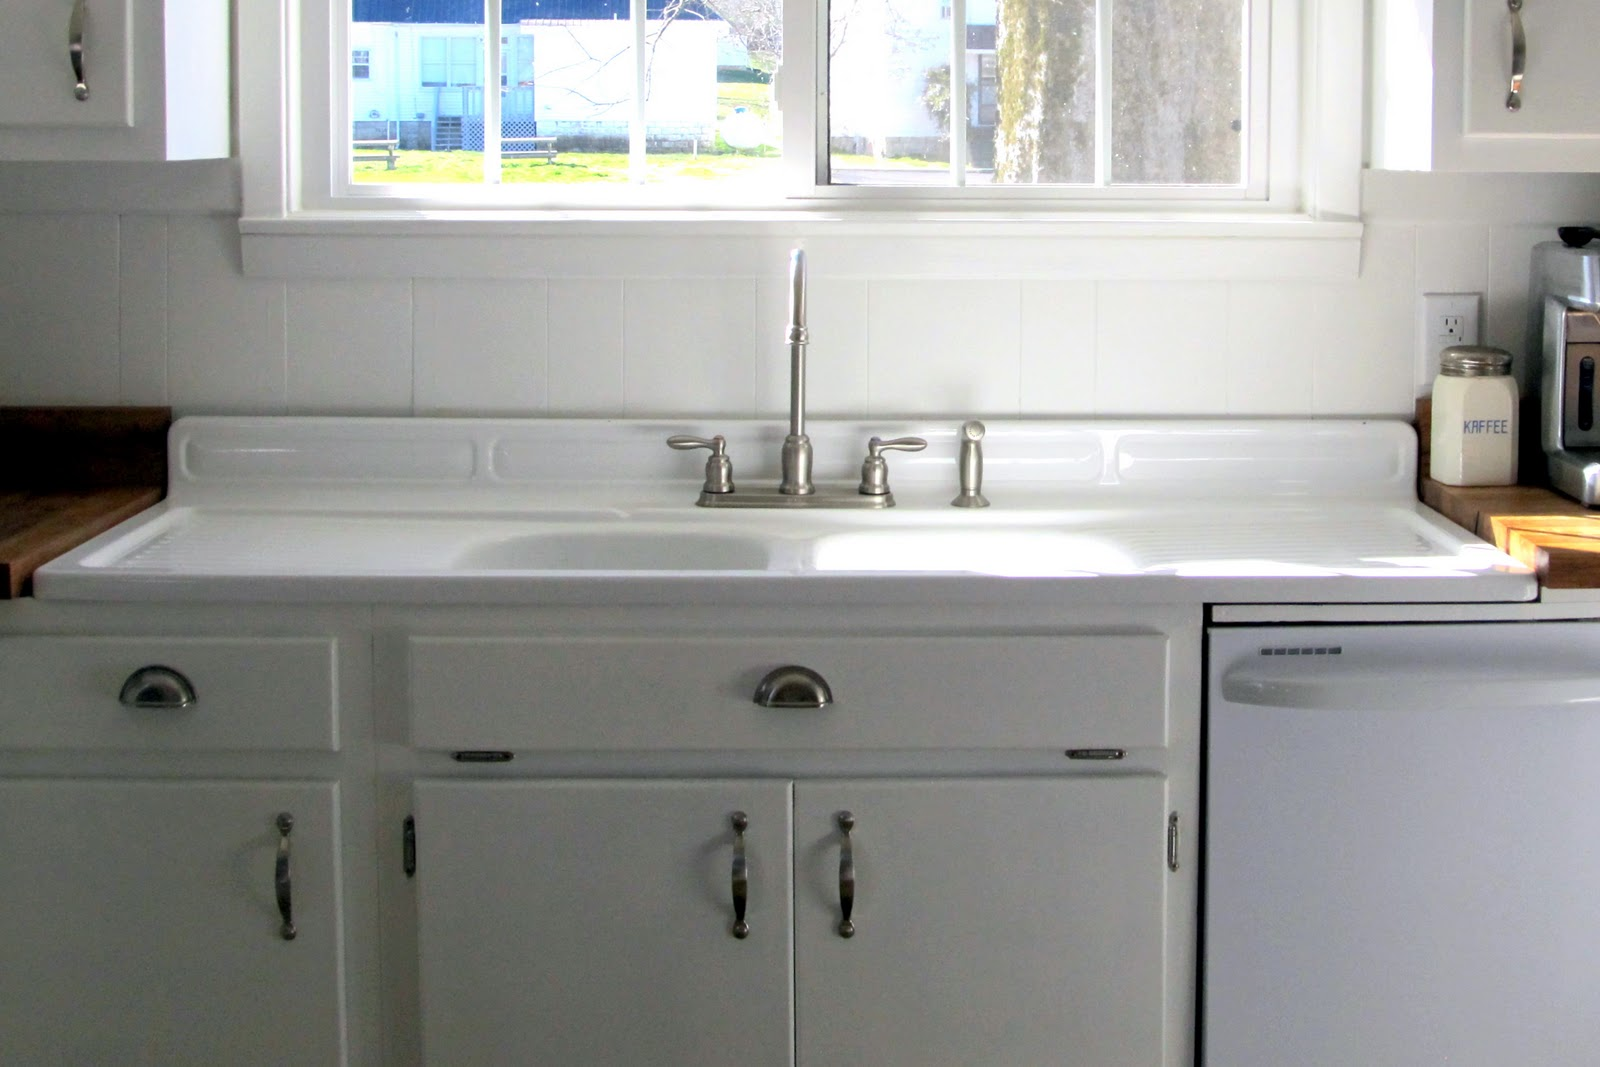 Best Living Home Inspiration Traditional Vintage Kitchen Sinks For Your Particular Kitchen